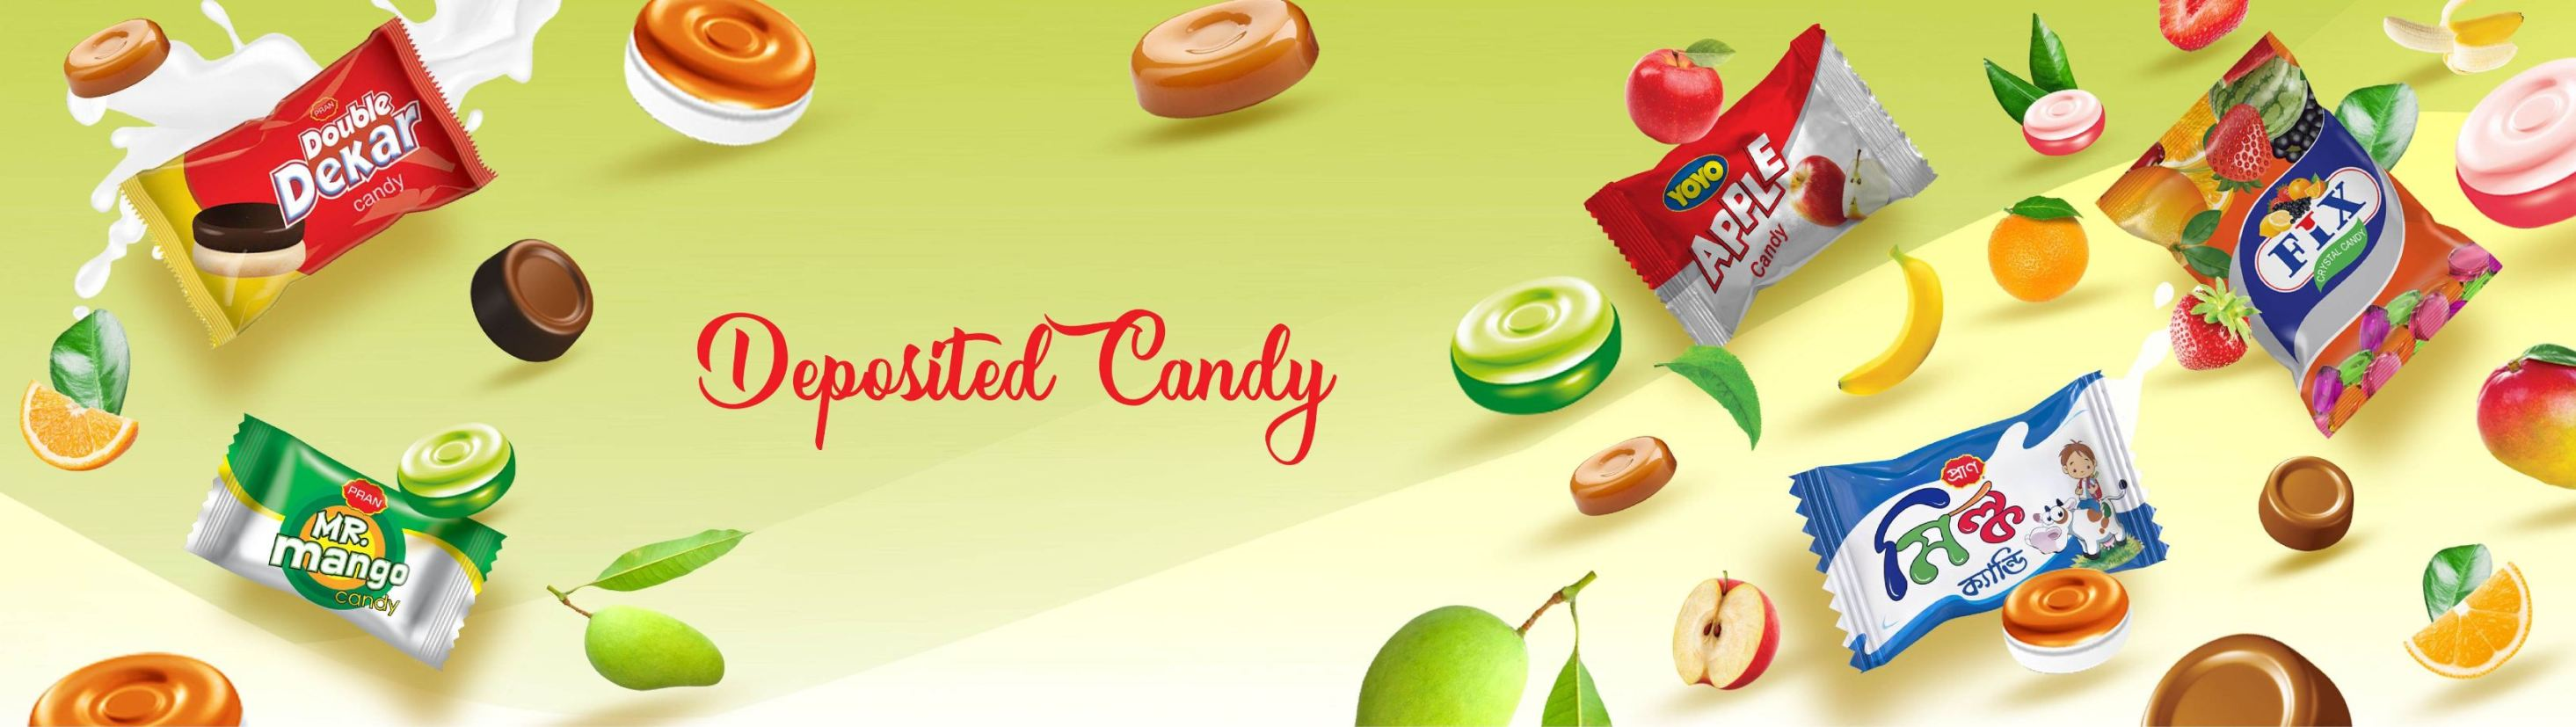 Deposited Candy